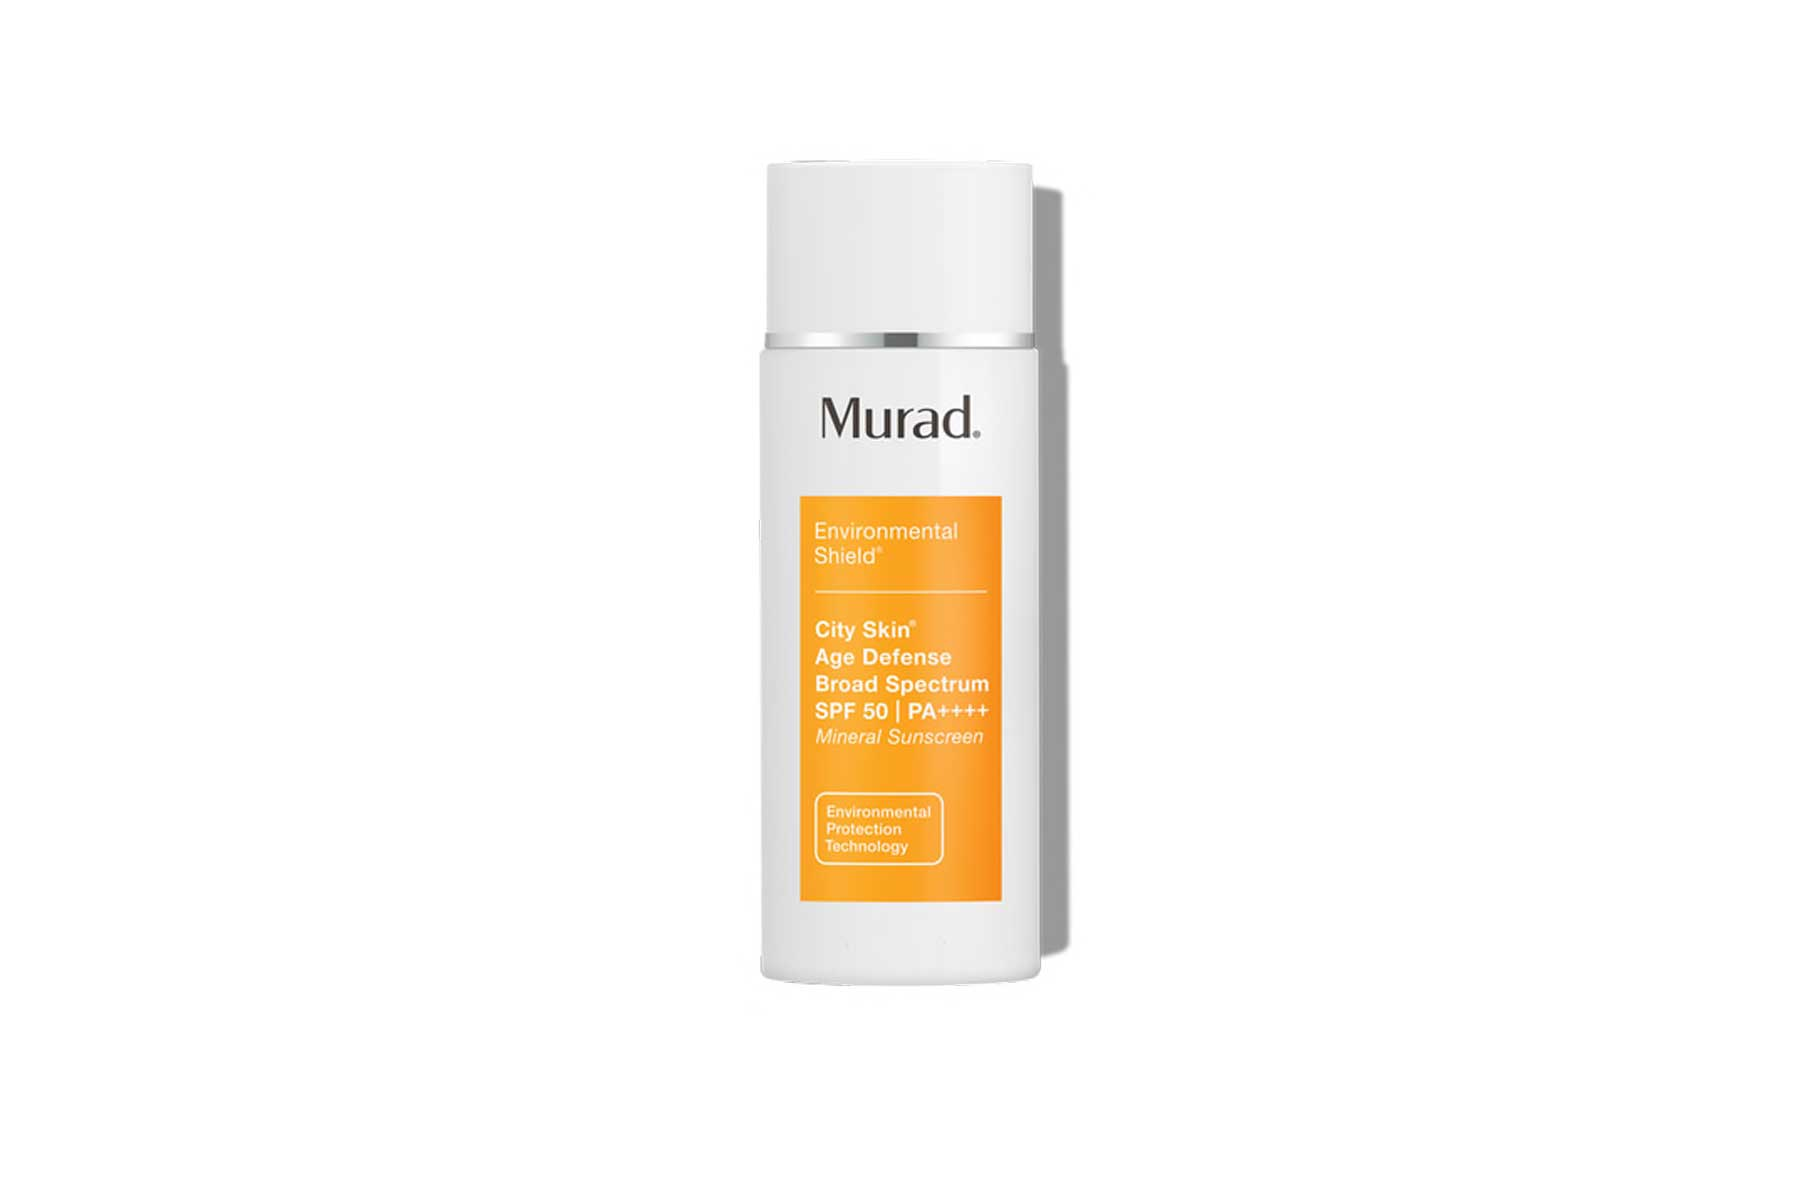 Murad's Environmental Shield City Ski, Age Defense Broad Spectrum SPF 50